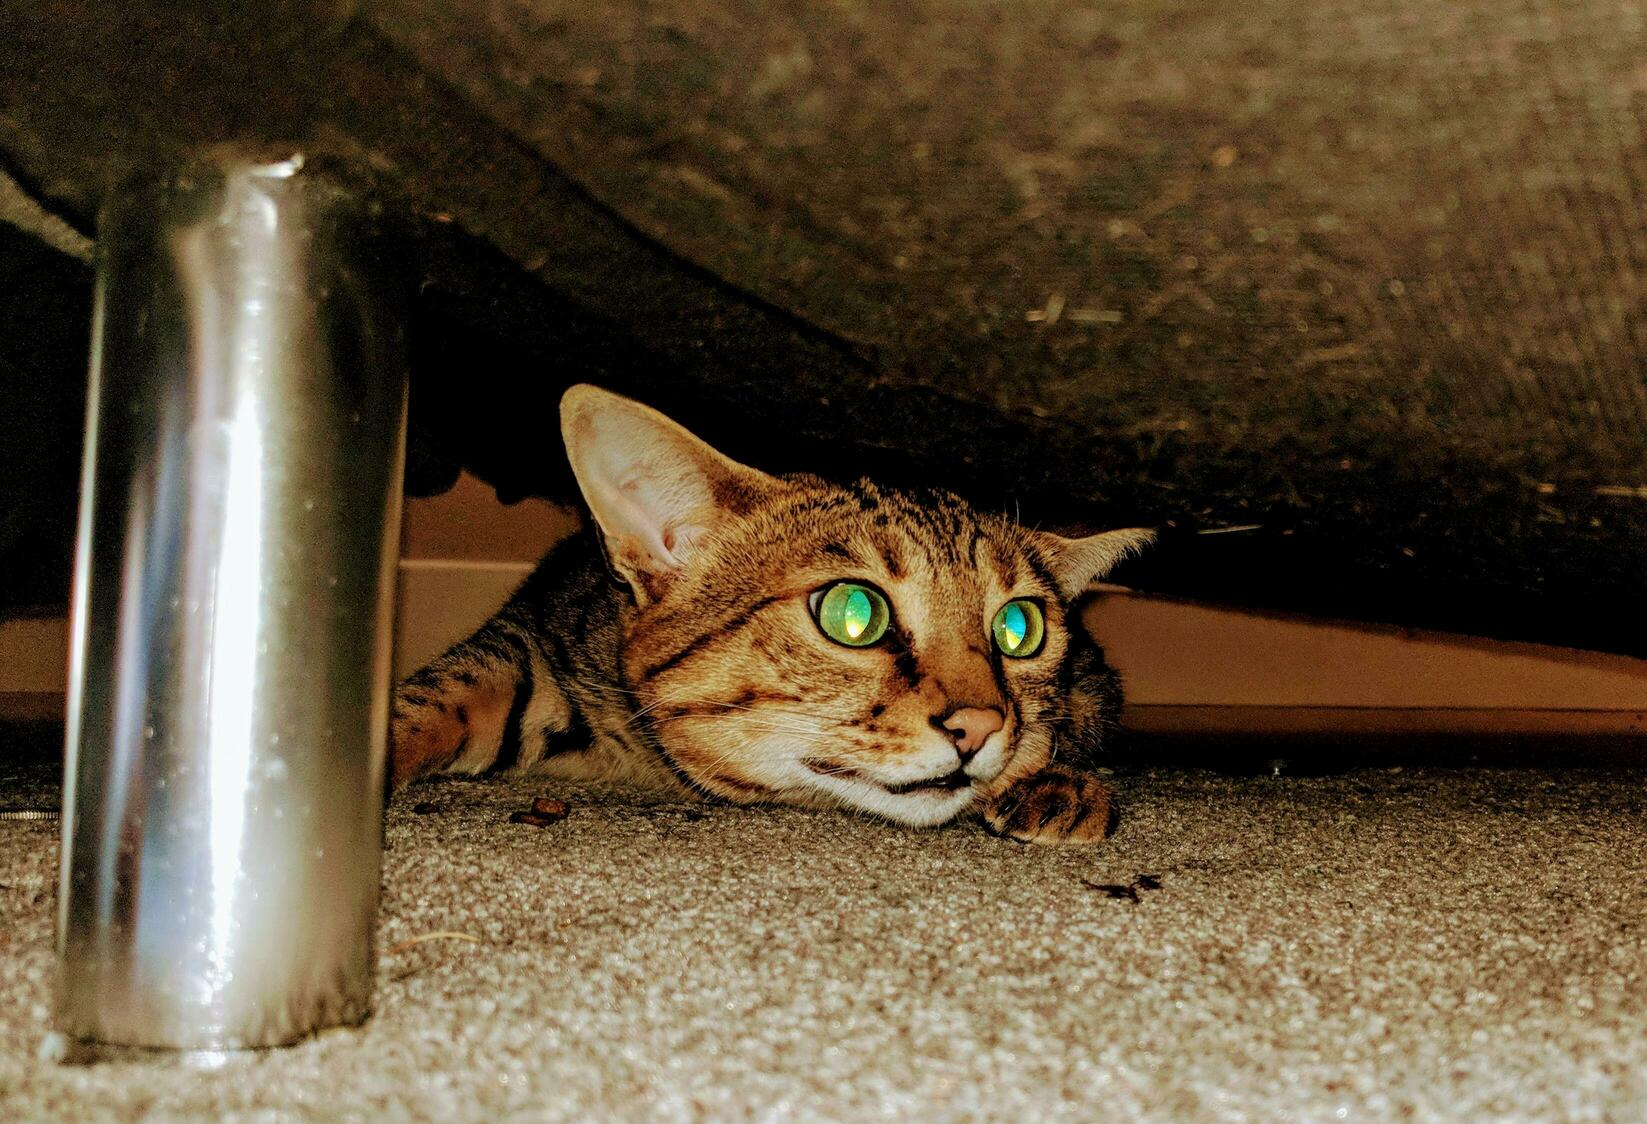 Luna hiding from the bad motor bikes outside, before scavenging for leftovers under the couch